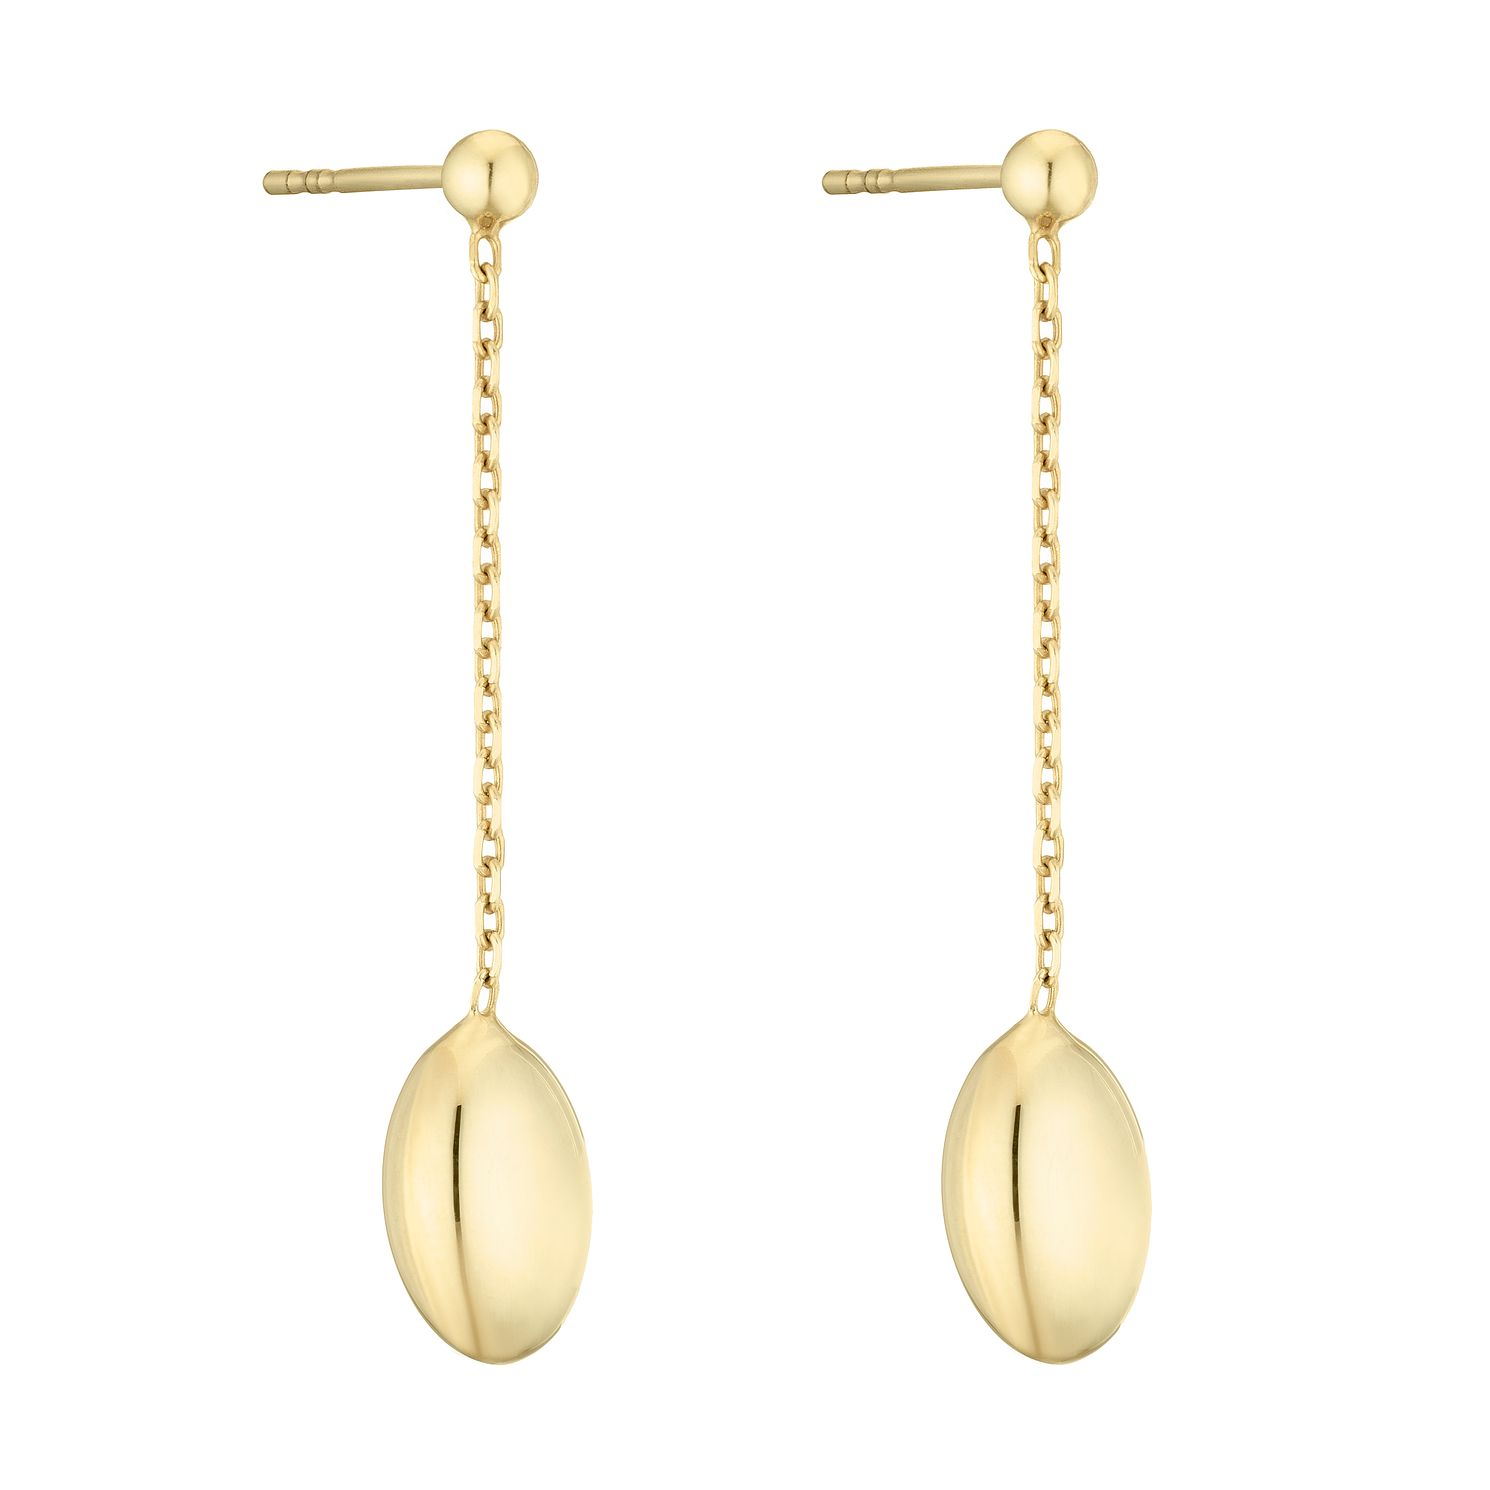 9ct Yellow Gold Oval Bead Drop Earrings - Product number 4517717